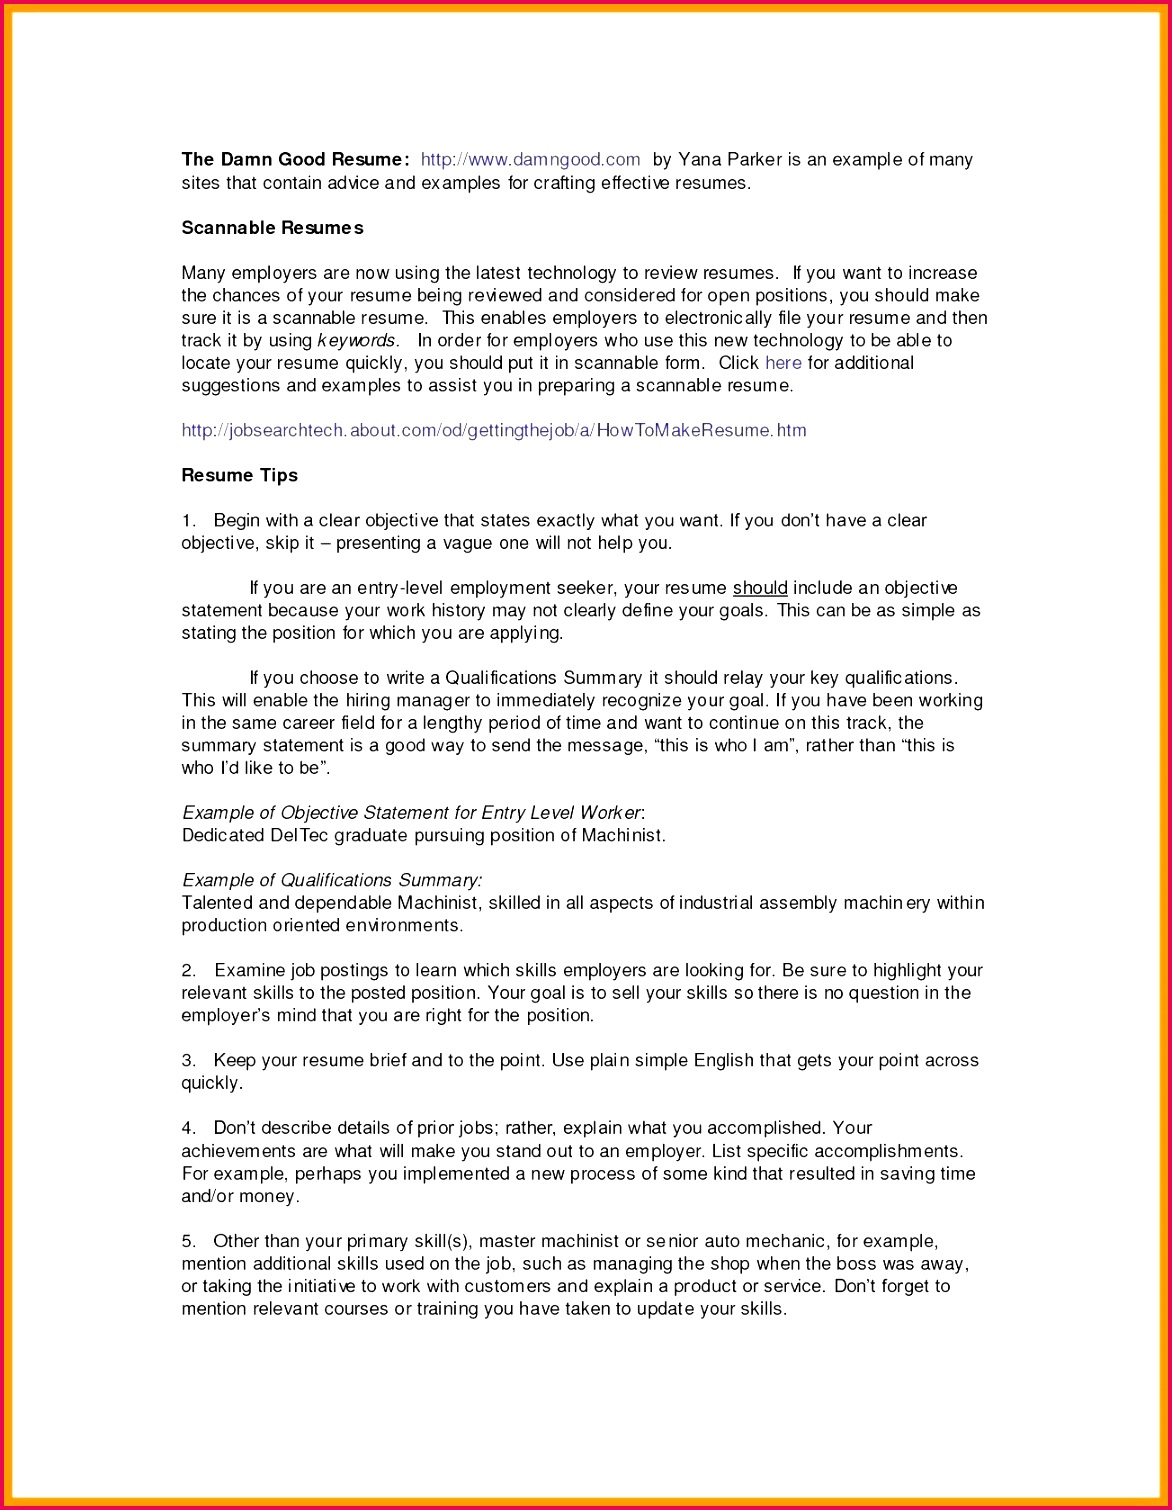 6 employee payroll record template 48796